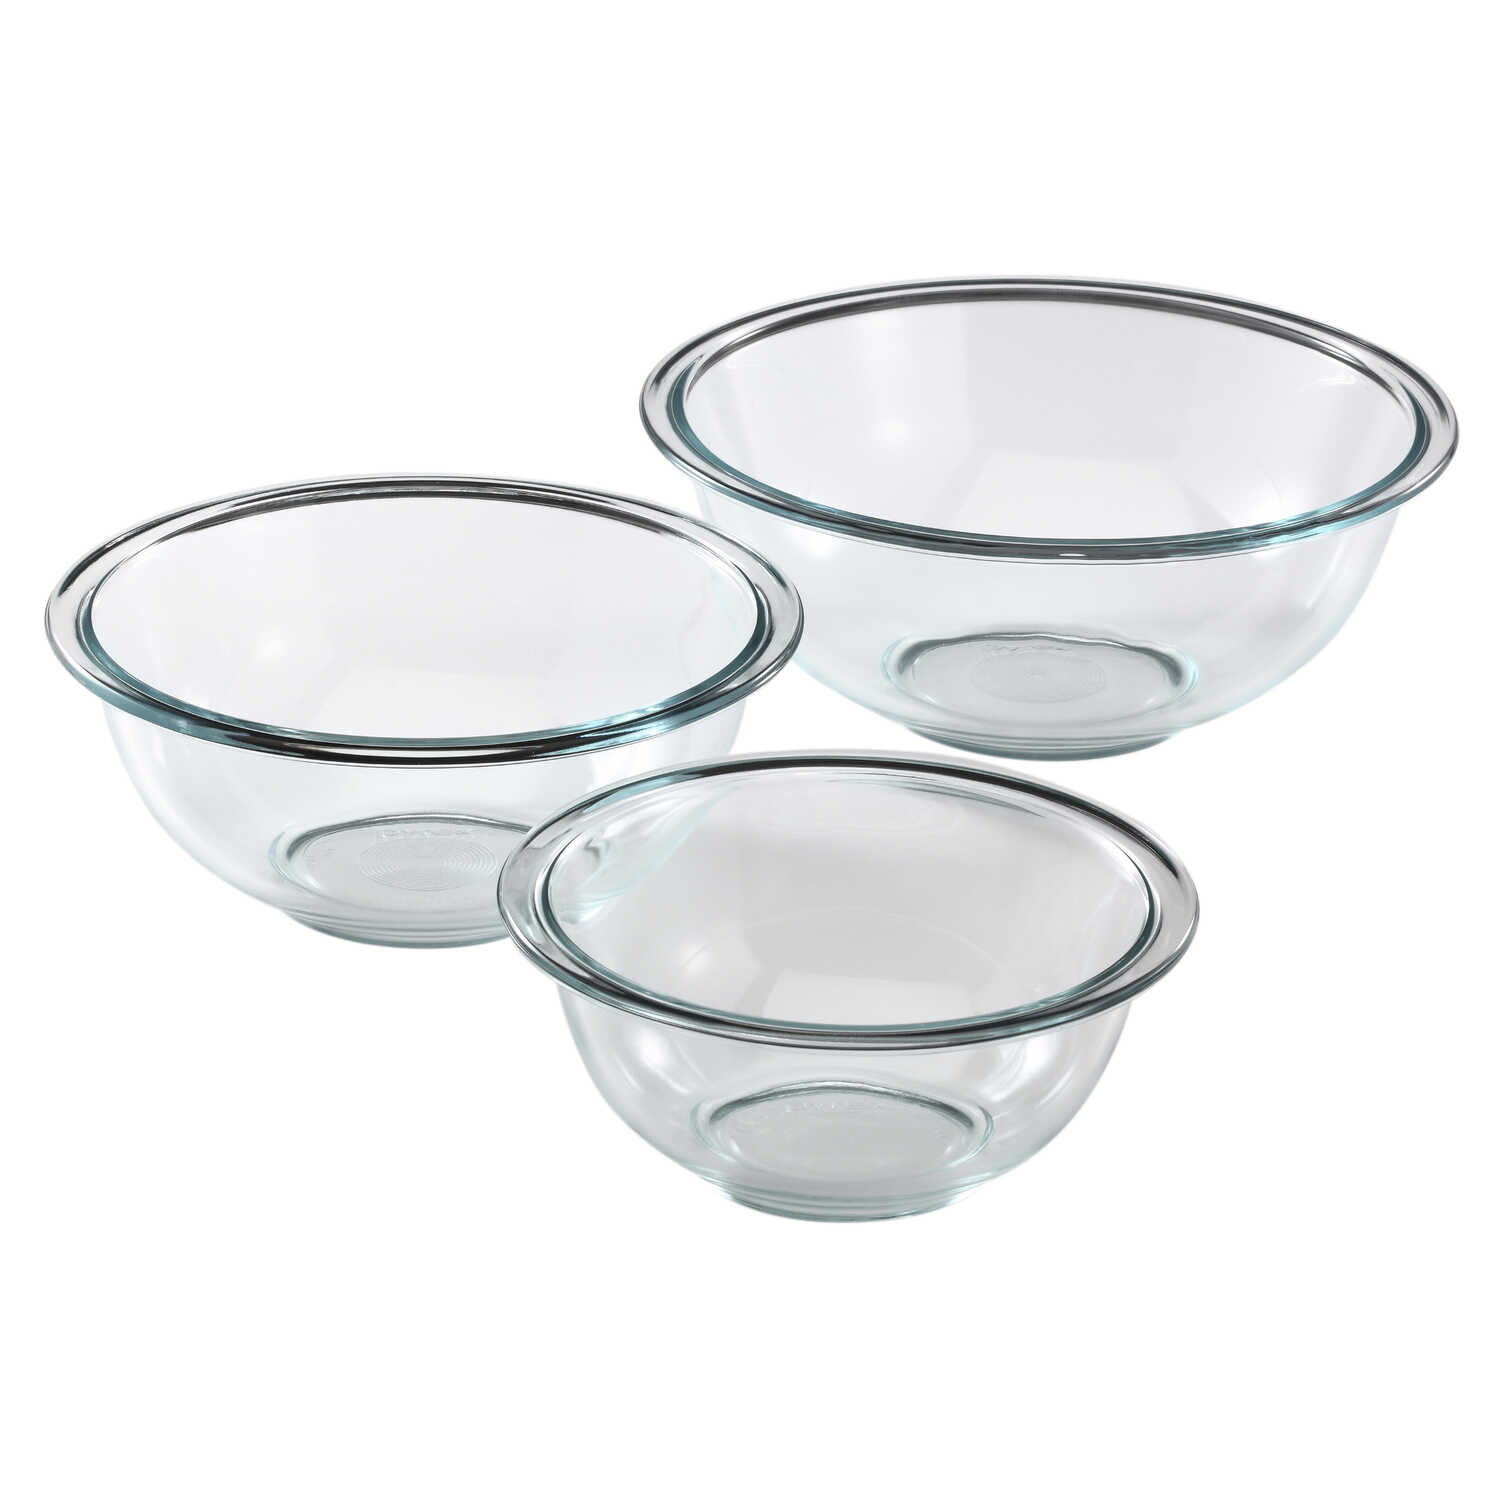 Pyrex  Smart Essentials  1, 1.5, 2.5  Glass  Clear  Mixing Bowl Set  3 pc.